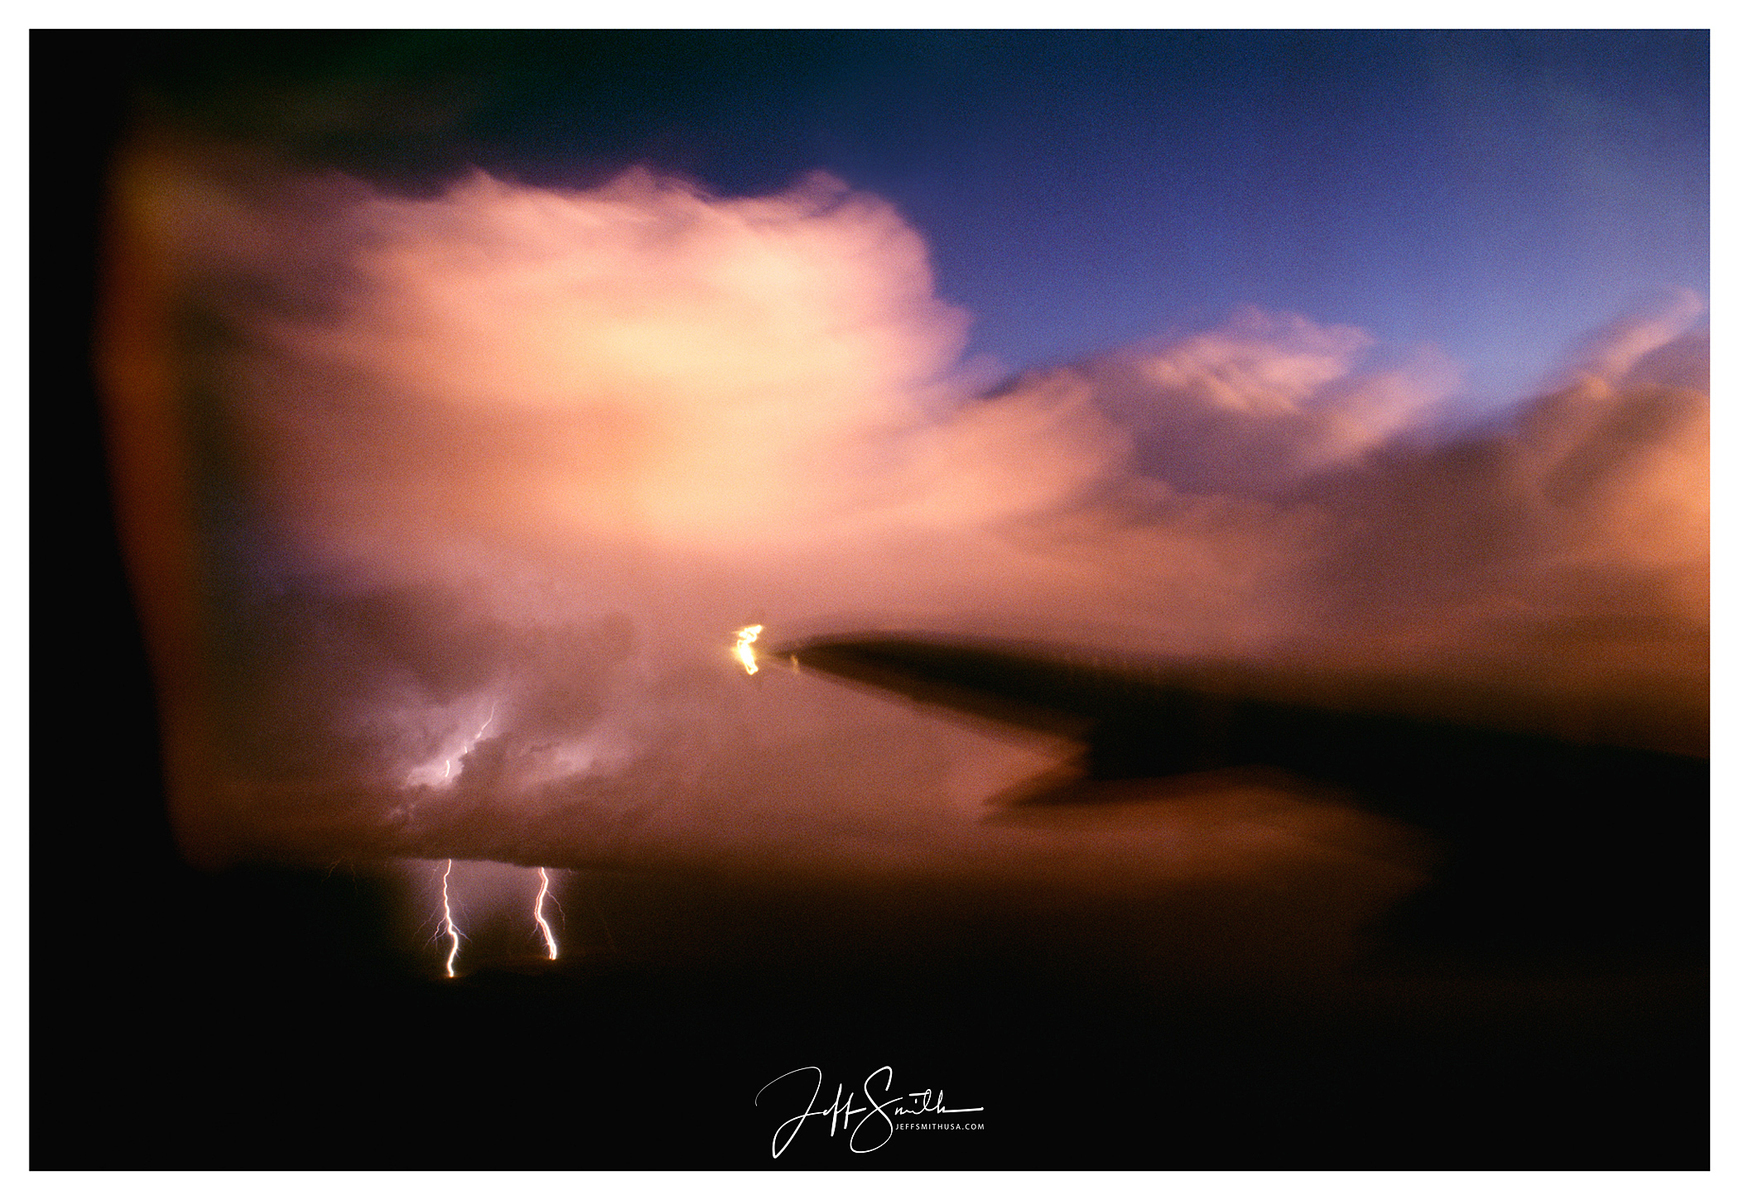 Flying into  Albuquerque, NM  at sunset I saw lightning in the distance towards the Santa Fe area.  I pushed my camera up against the window  opened the shutter momentarily and captured this.  1988 